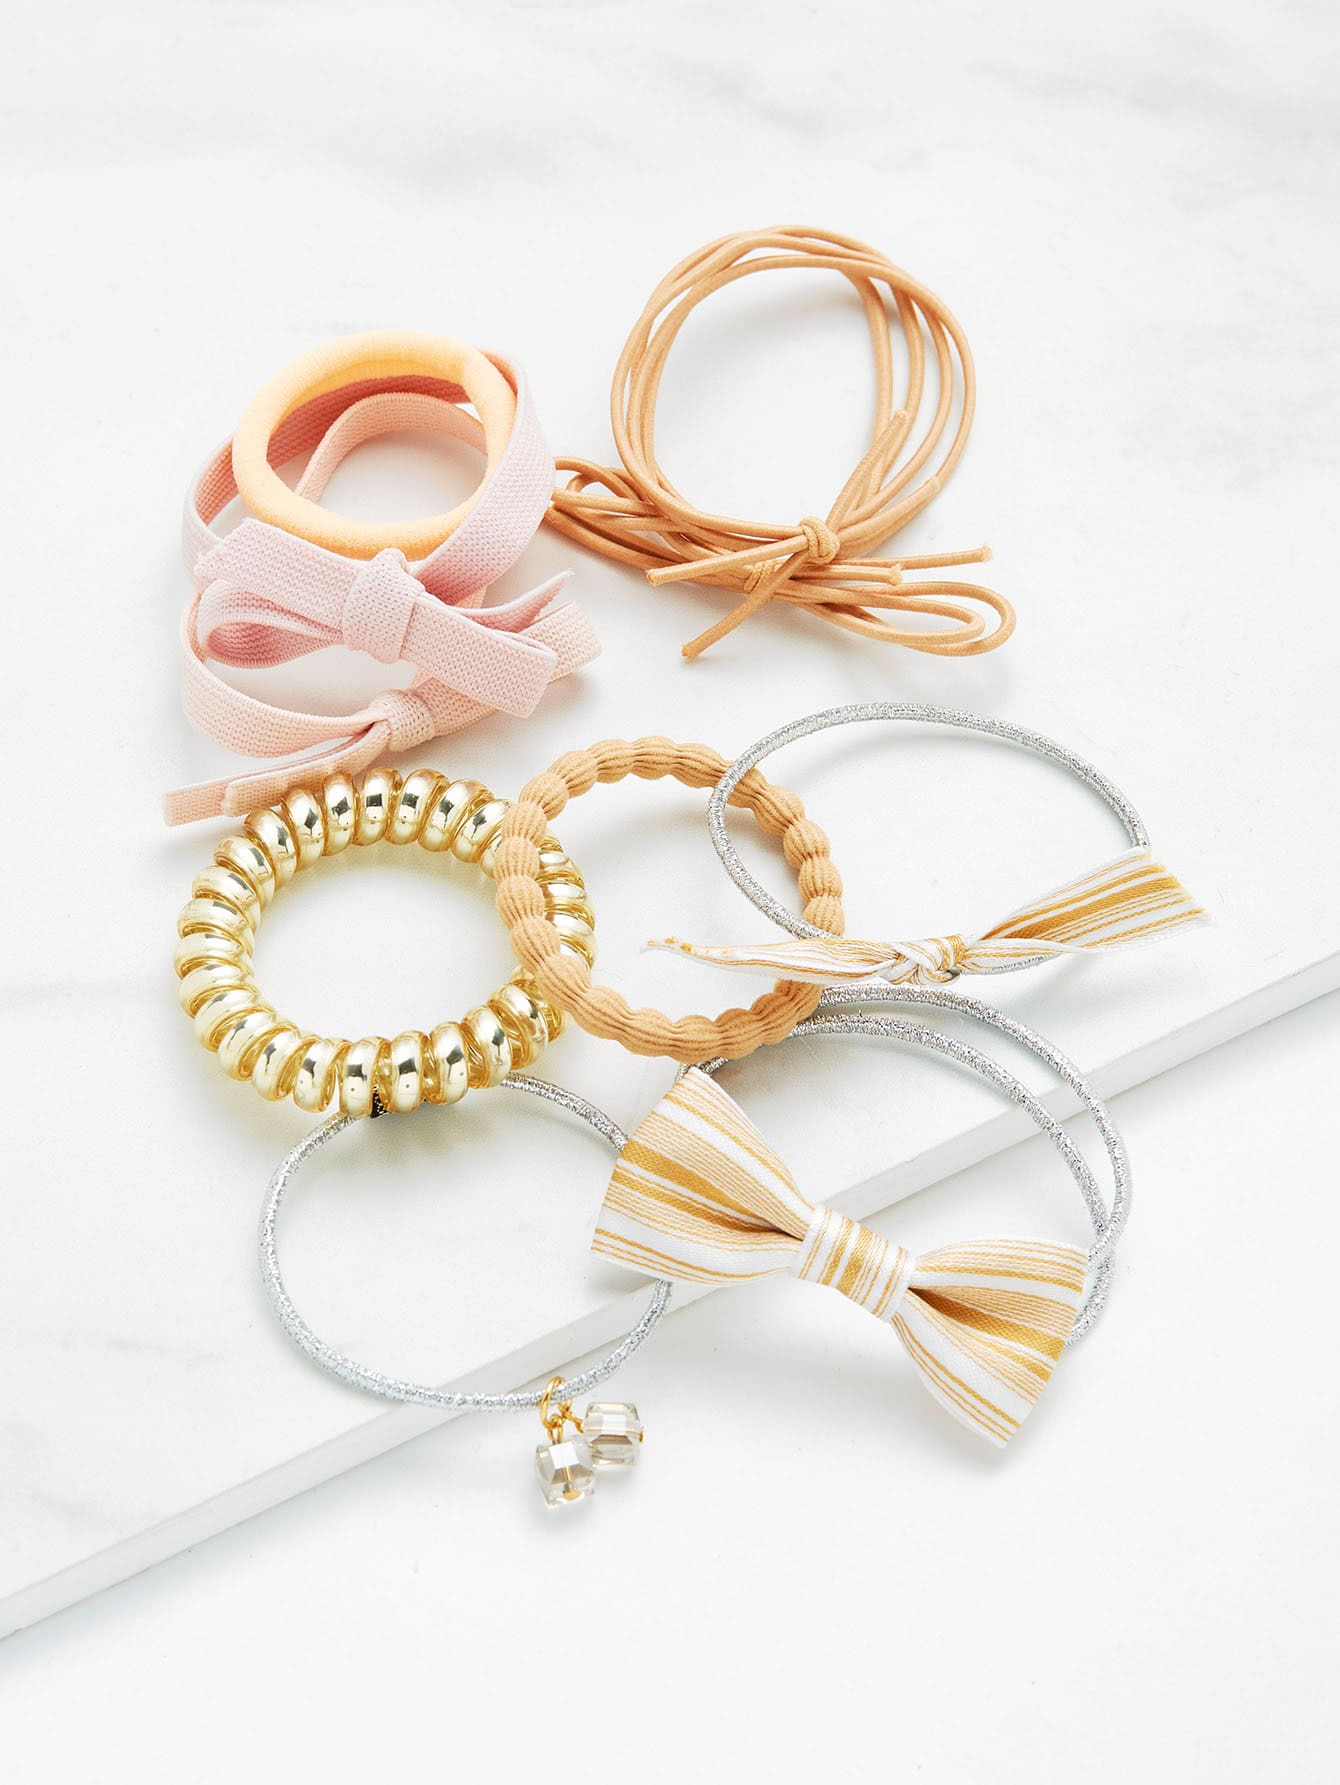 Coil & Knotted Hair Tie 10pcs With Mesh Bag 10pcs m66291